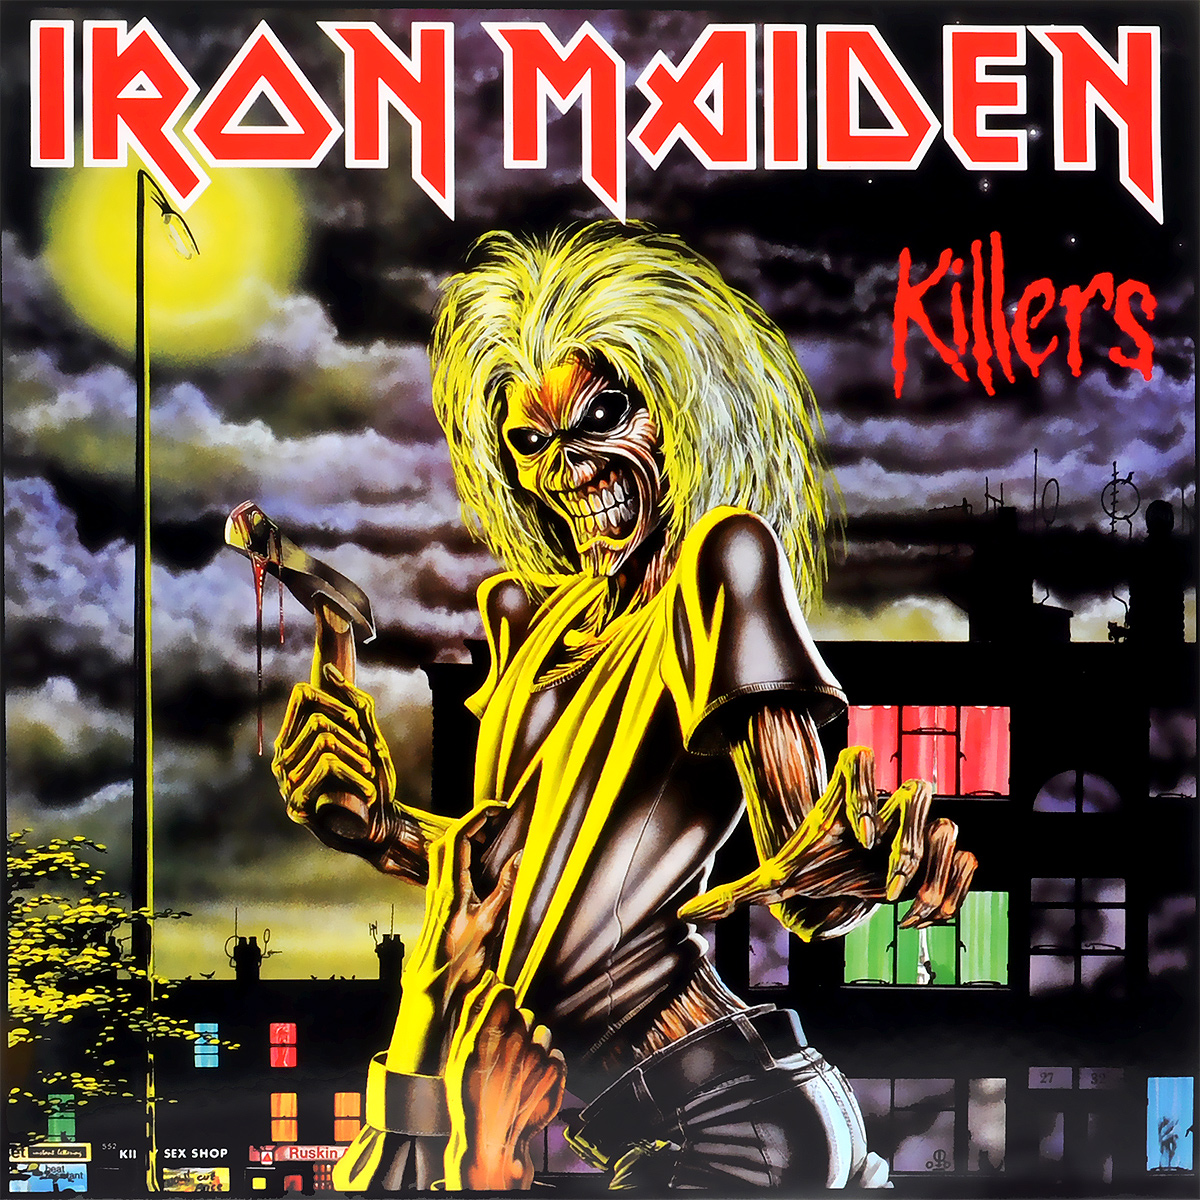 цена на Iron Maiden Iron Maiden. Killers (LP)